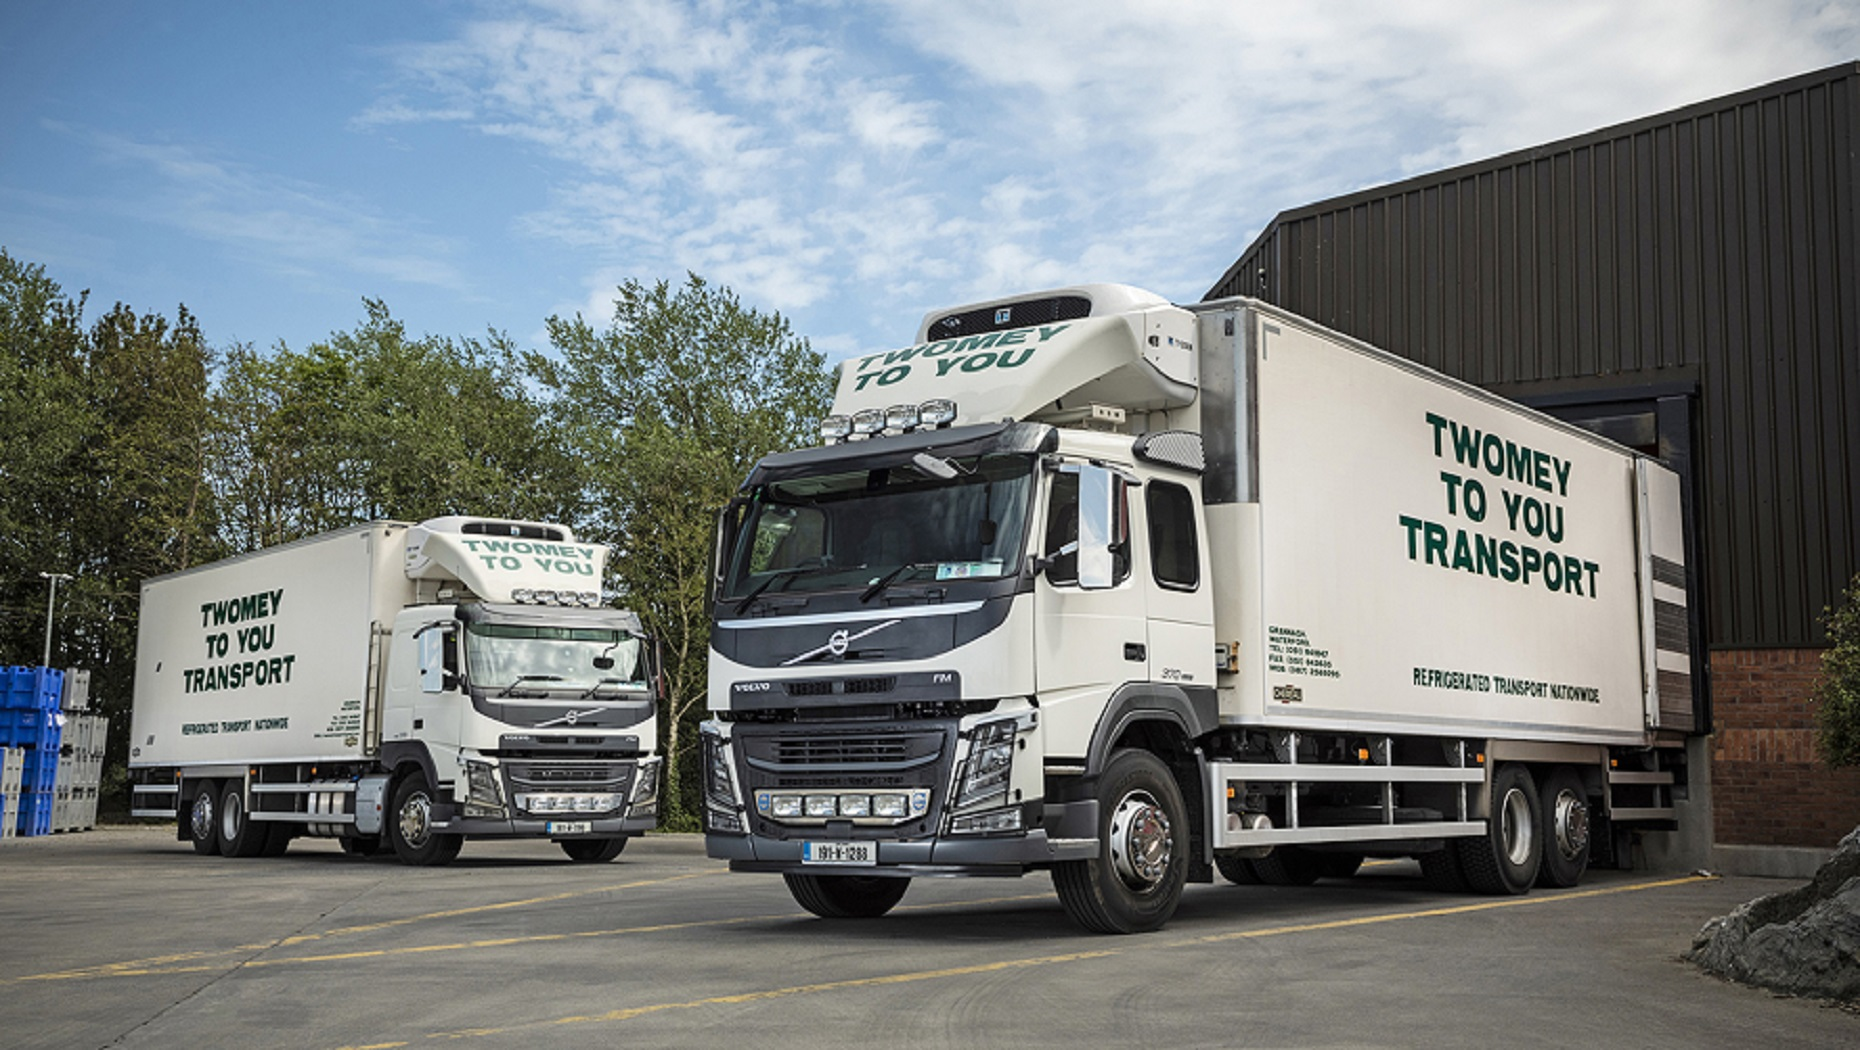 Volvo's FM rigid chassis 'meats' the high standards required at Twomey To You Transport